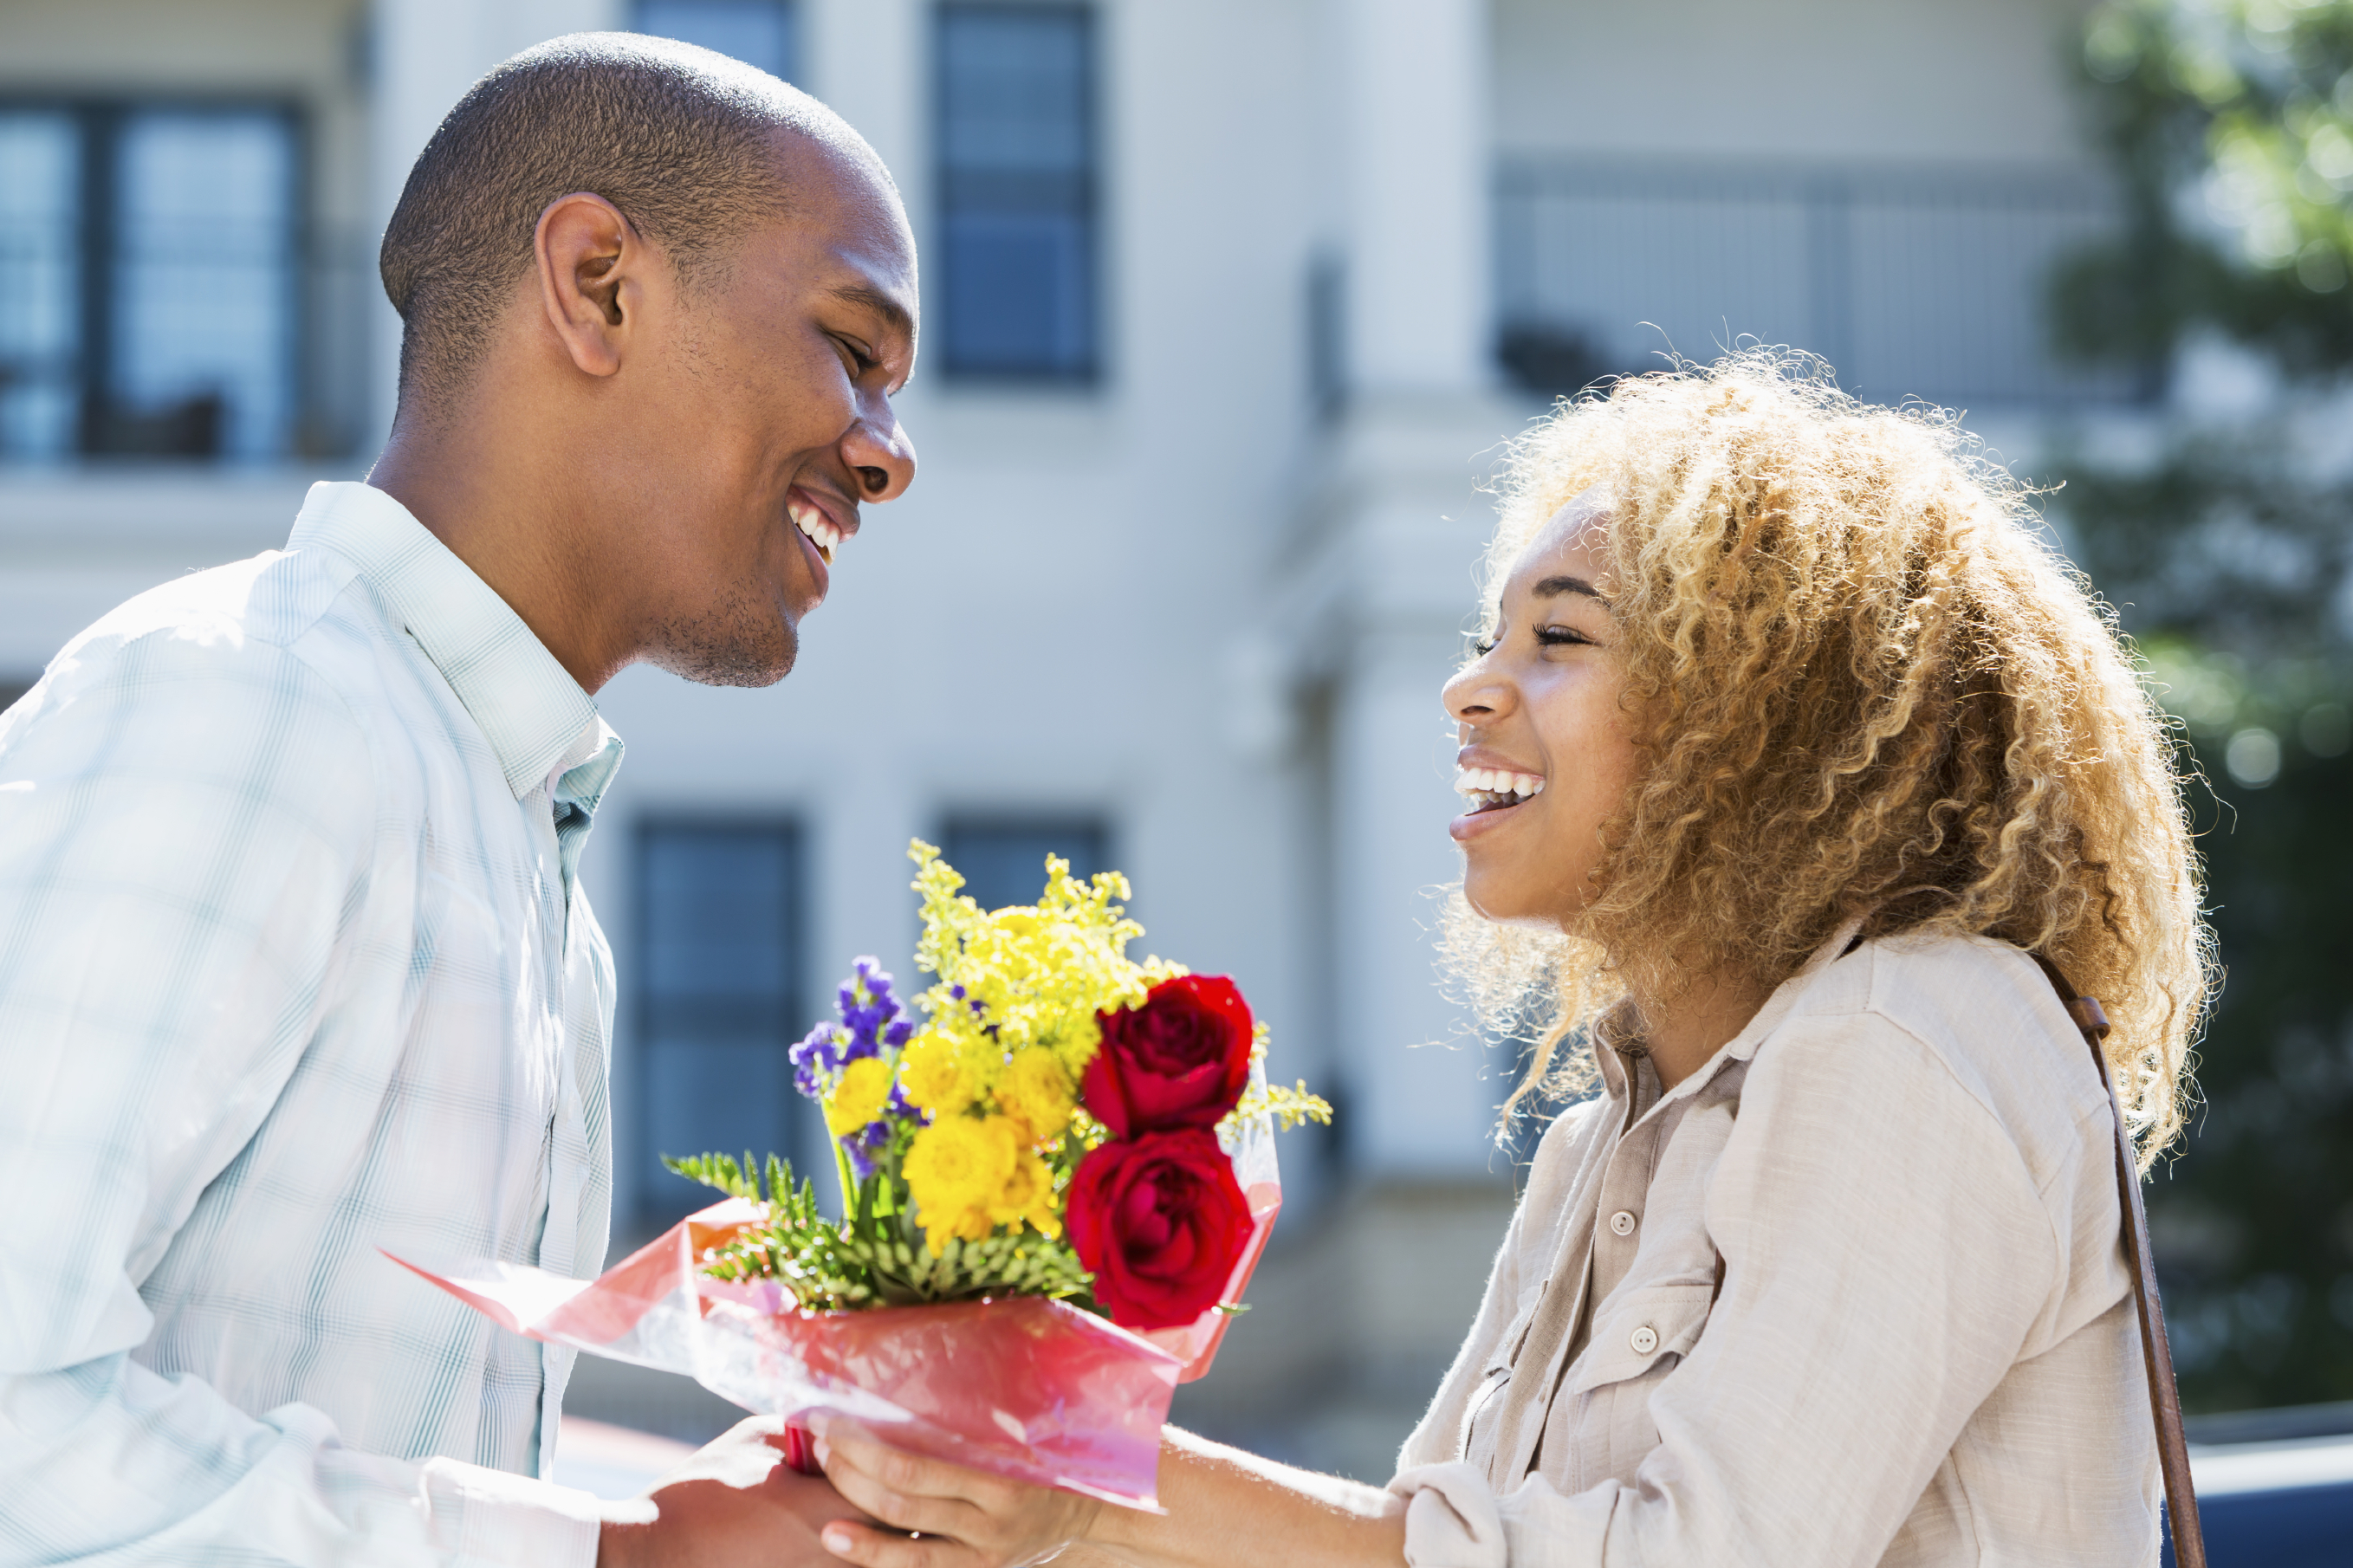 5 ways you can get closer in a distance relationship-dailyfamily.ng